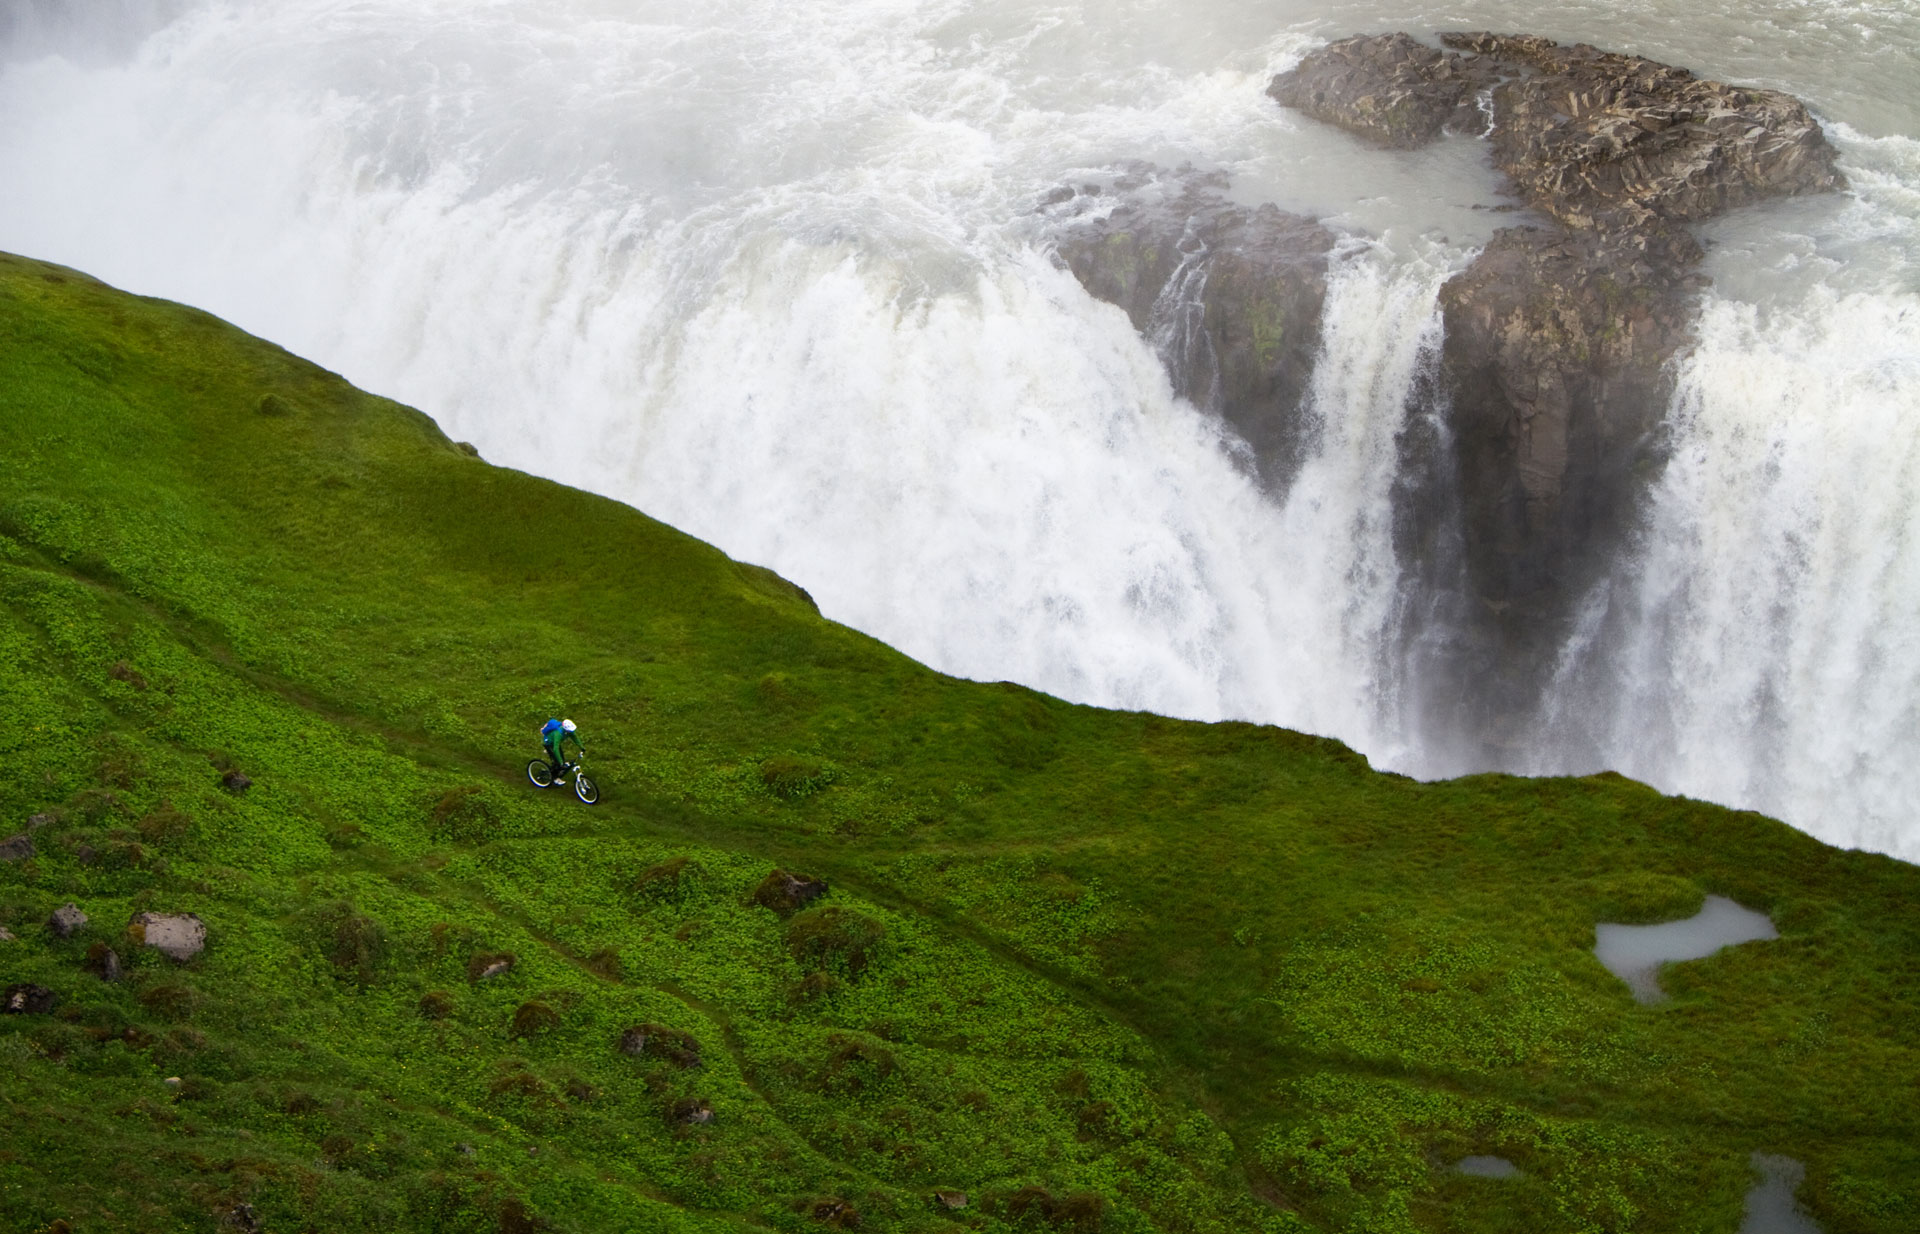 VAUDE-Visions-Wallpapers-for-free-Bastian-Morell-Mountainbiking-in-Iceland-close-to-Gullfoss-wallpaper-wp48011652